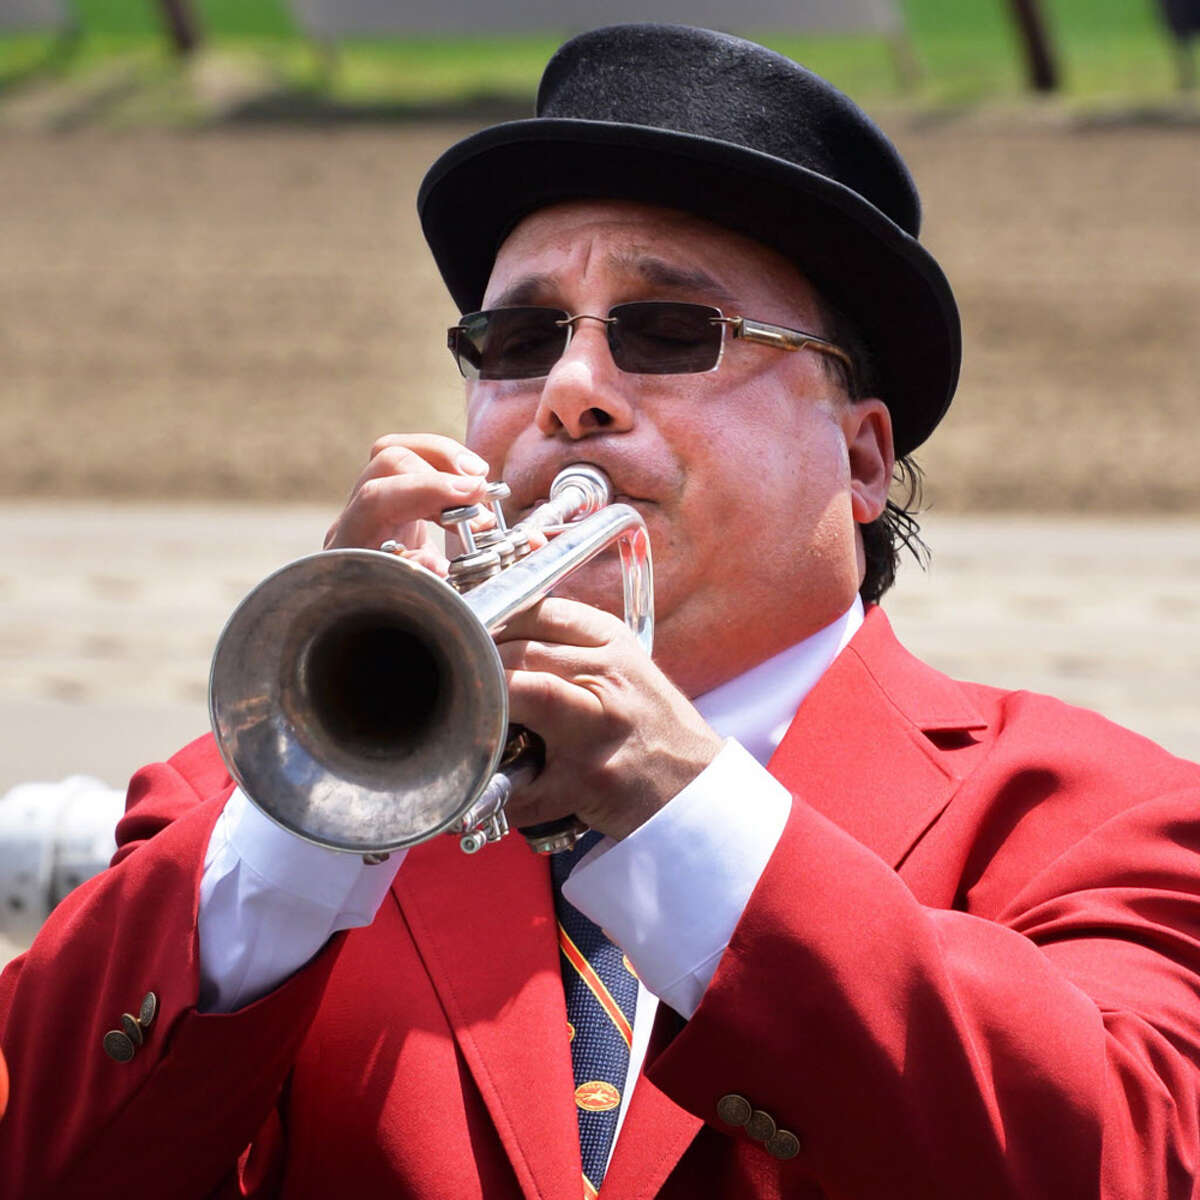 """Sam """"The Bugler"""" Grossman plays Happy Birthday before the start of the first race as Saratoga Race Course celebrates its 150 year anniversary Saturday Aug. 3, 2013, in Saratoga Springs, NY. (John Carl D'Annibale / Times Union) ORG XMIT: MER2013080317162720"""